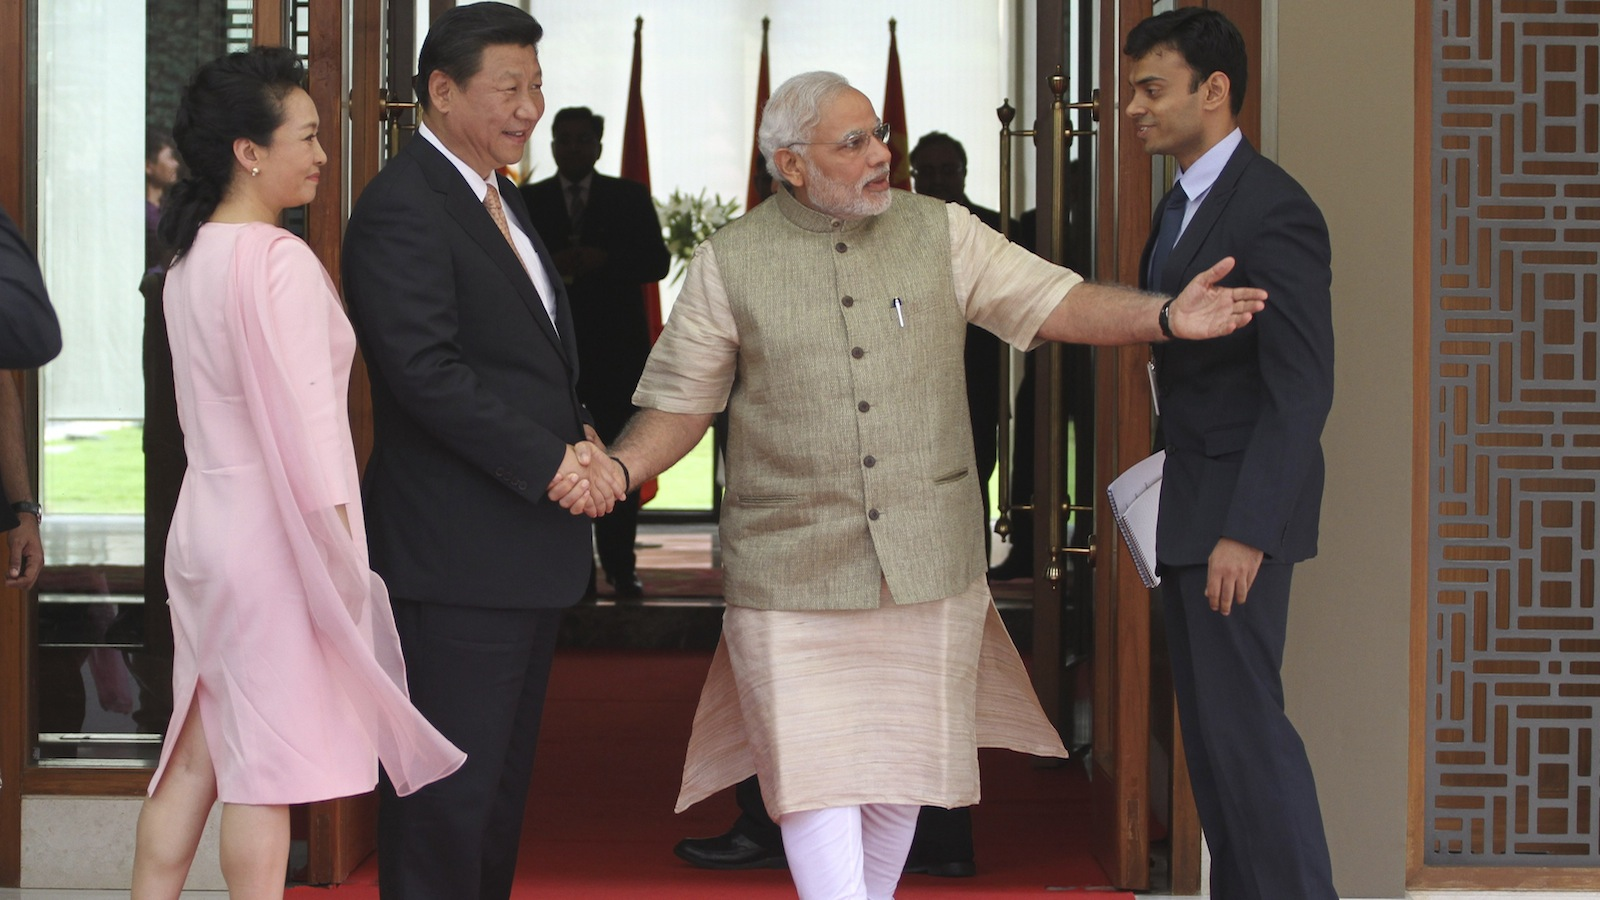 Indian Prime Minister Narendra Modi, center, welcomes Chinese President Xi Jinping, second left and Xi's wife Peng Liyuan, left upon arrival at a hotel in Ahmadabad, India, Wednesday, Sept. 17, 2014. Xi landed in Modi's home state of Gujarat on Wednesday for a three-day visit expected to focus on India's need to improve worn out infrastructure and reduce its trade deficit. (AP Photo/Ajit Solanki)